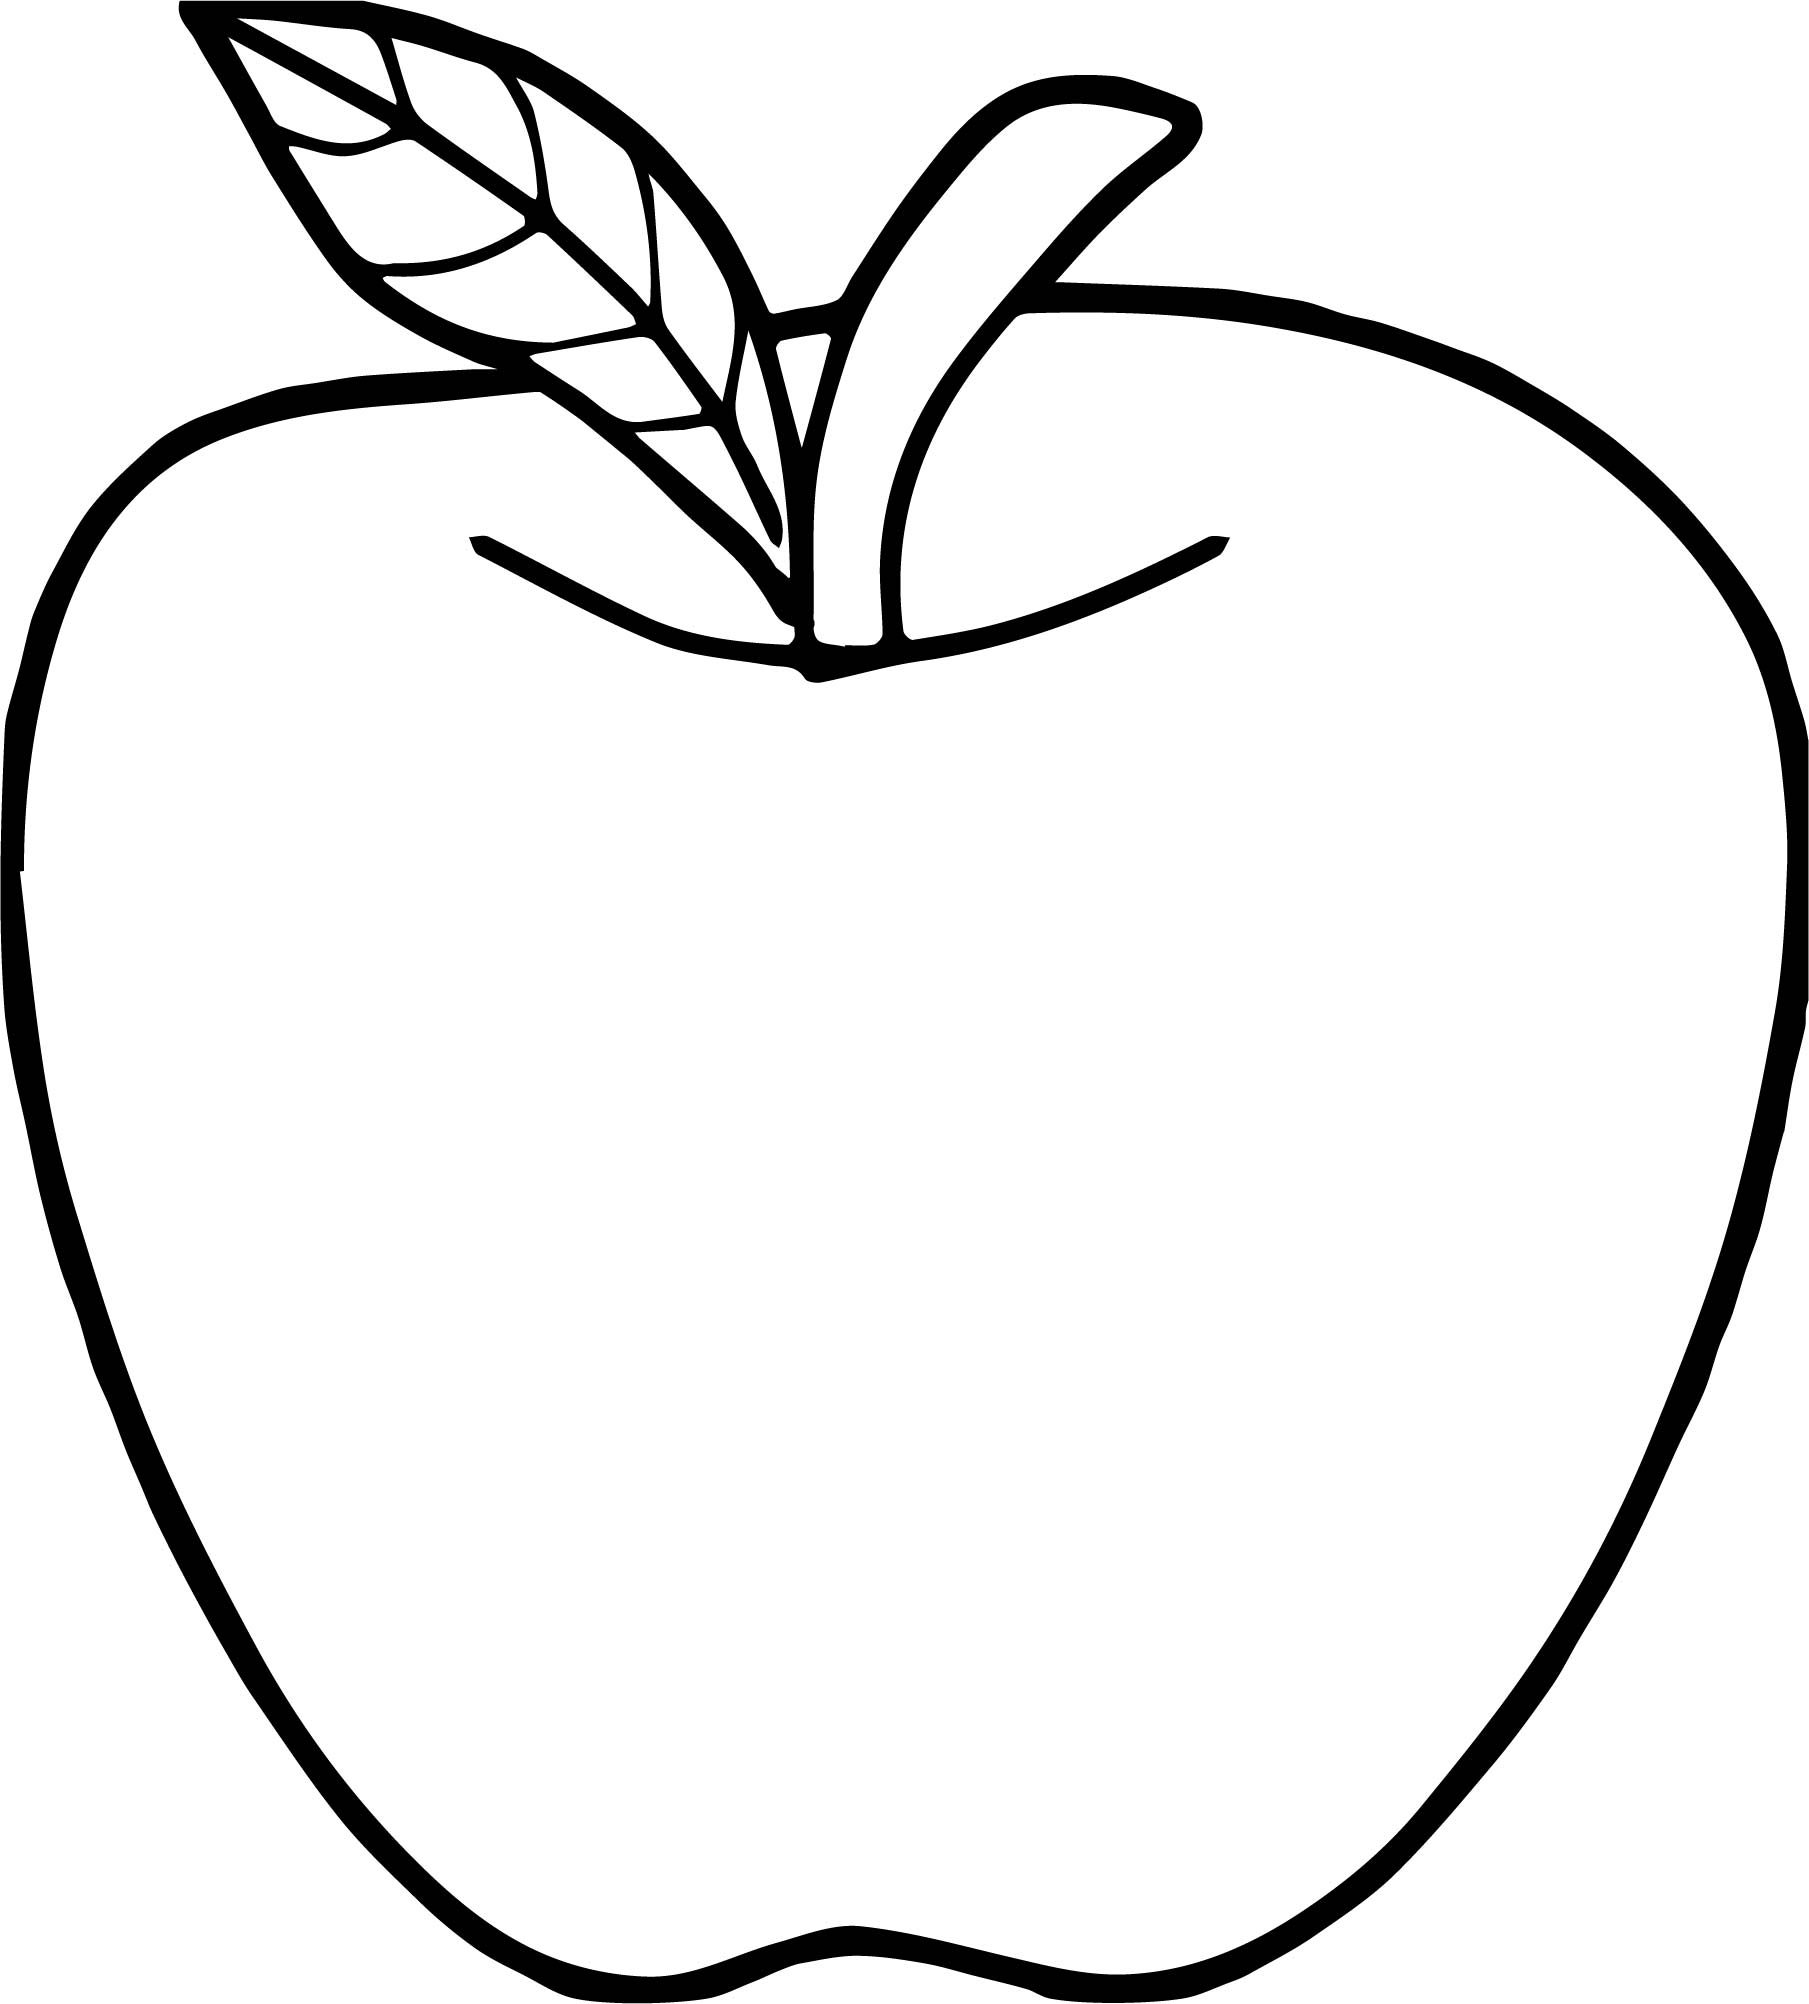 coloring page of an apple 20 free printable apple coloring pages everfreecoloringcom an of apple coloring page